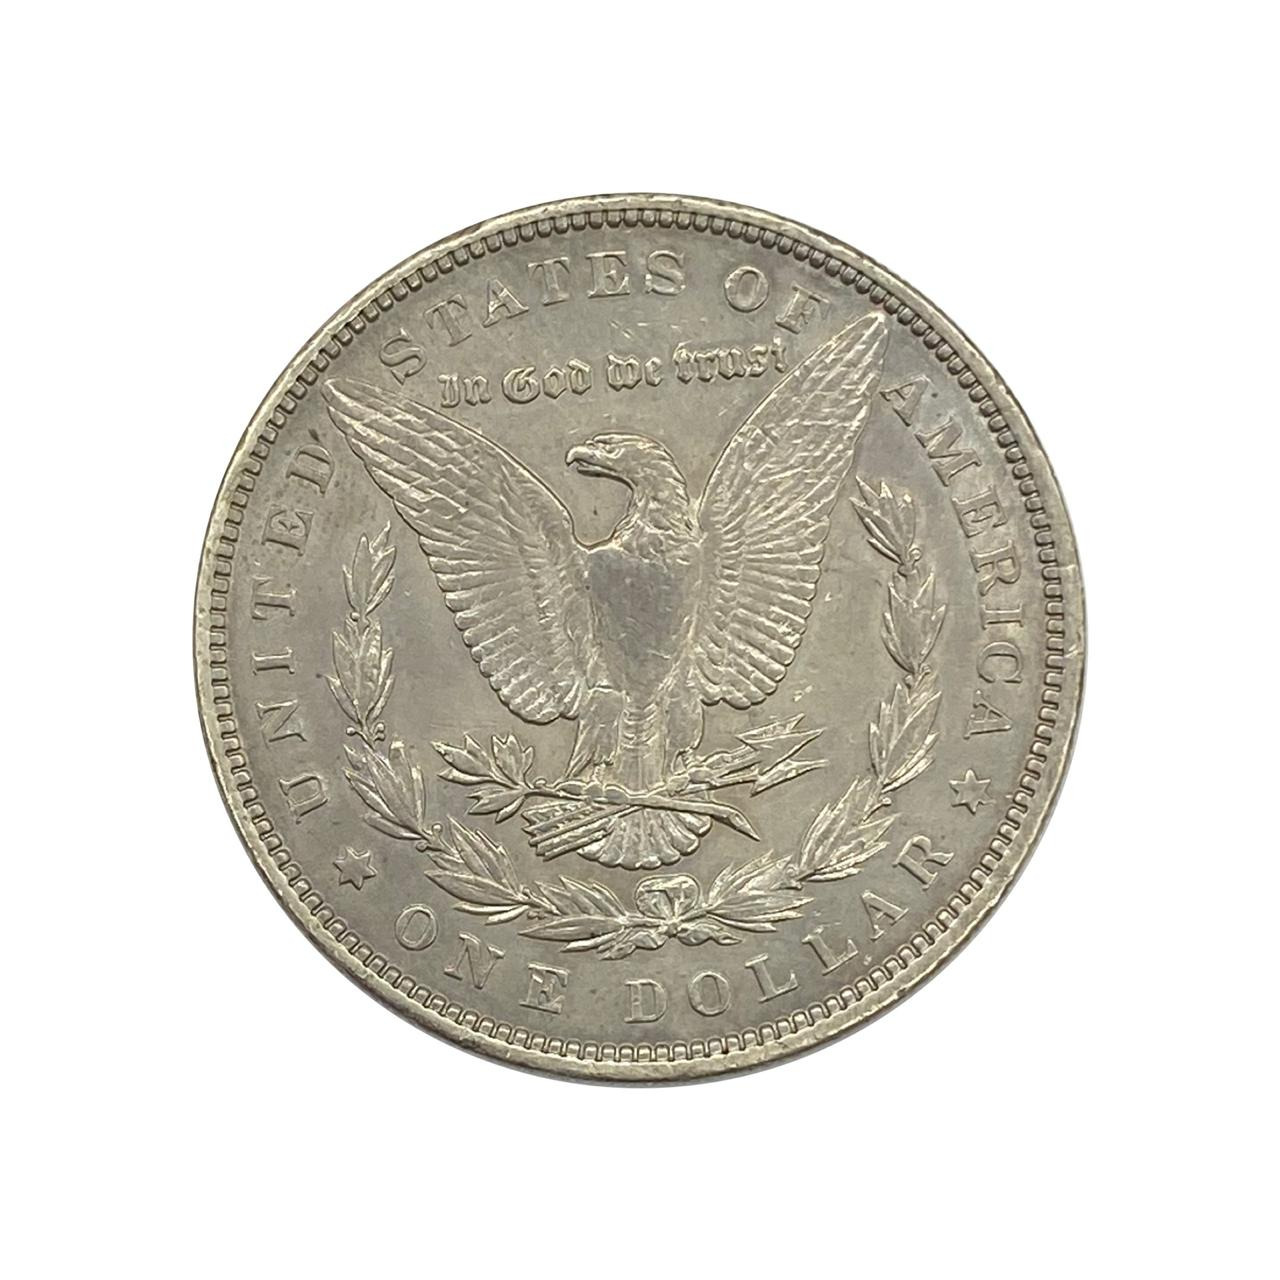 1 Dólar Morgan Dollar-1884